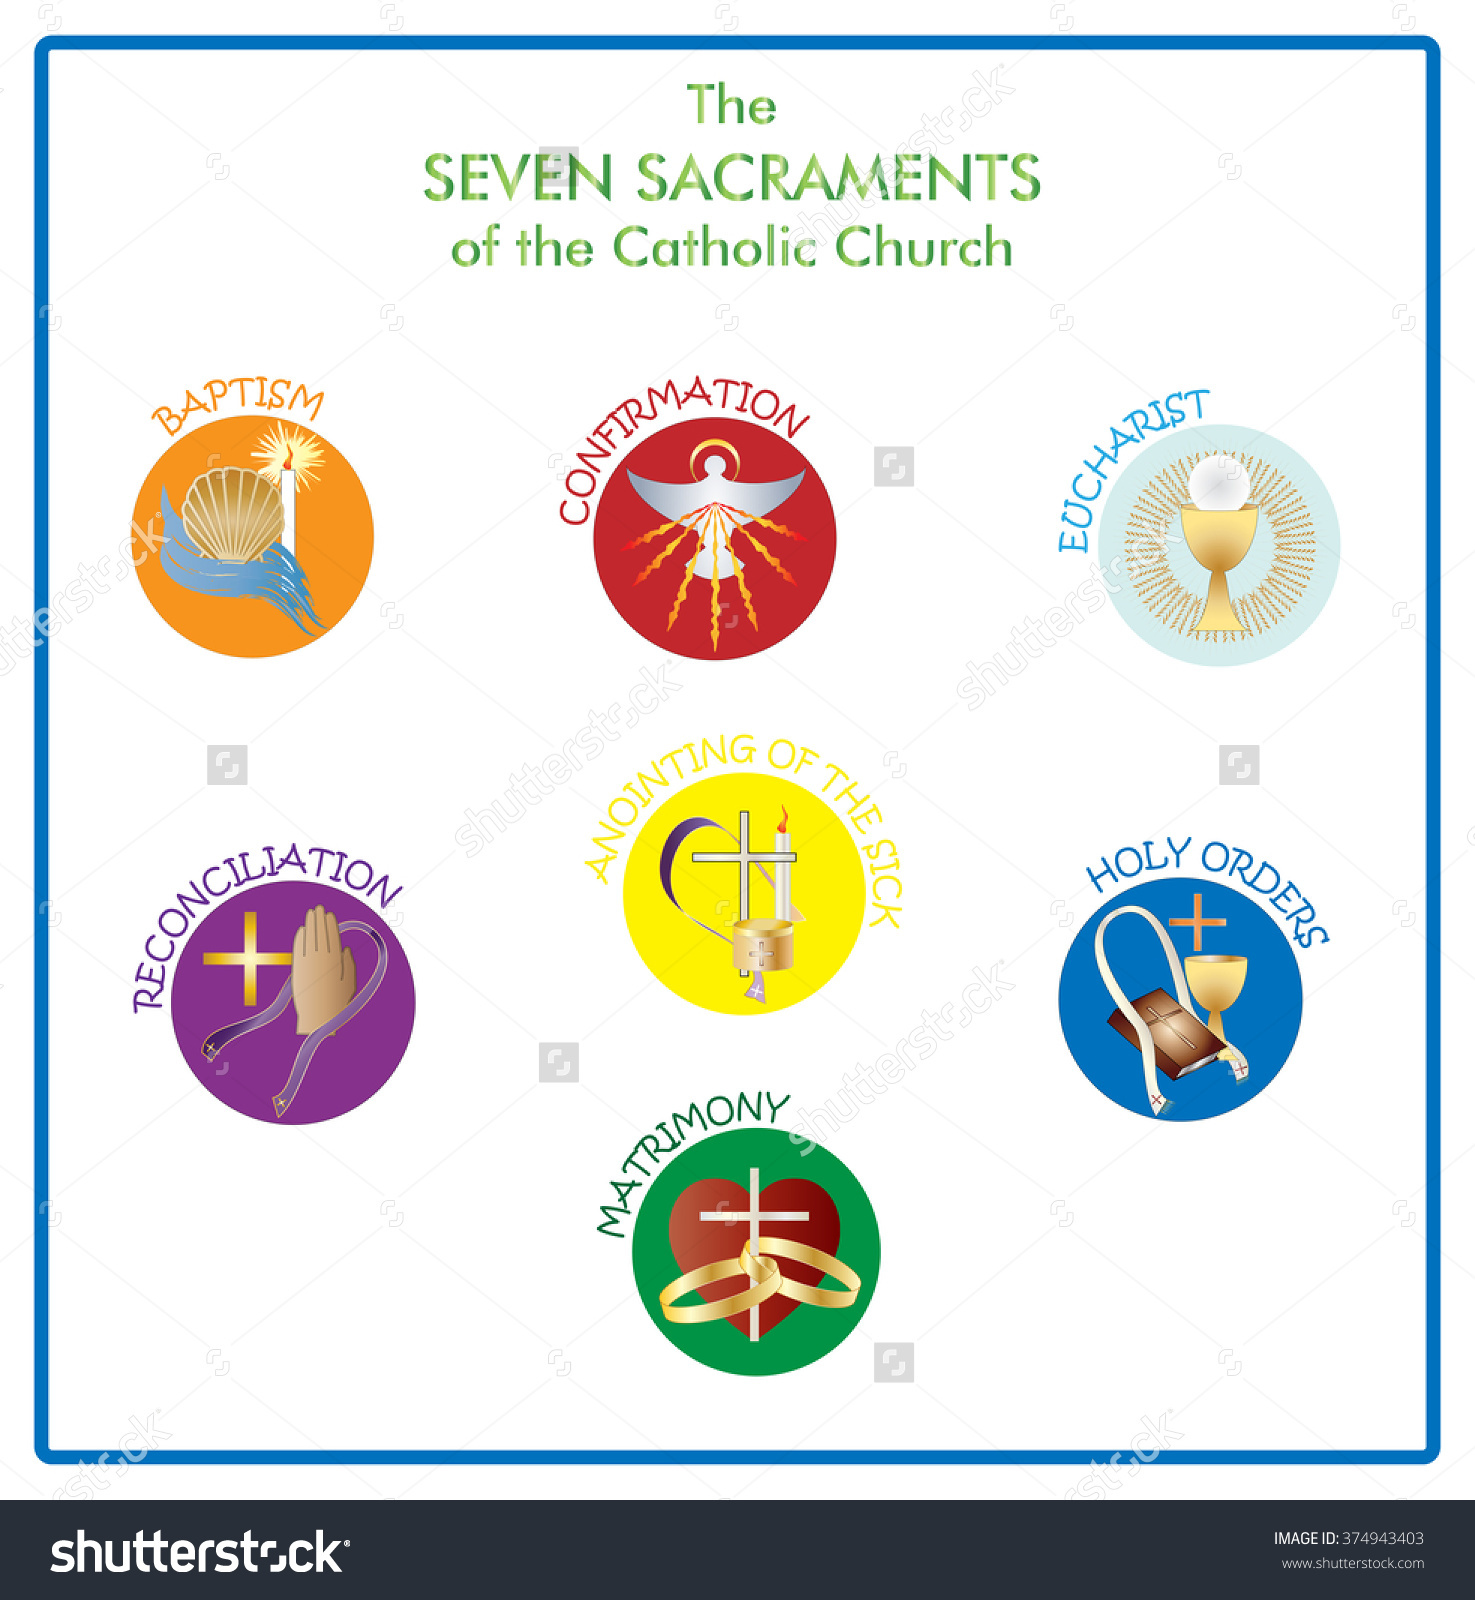 The Seven Sacraments Clipart